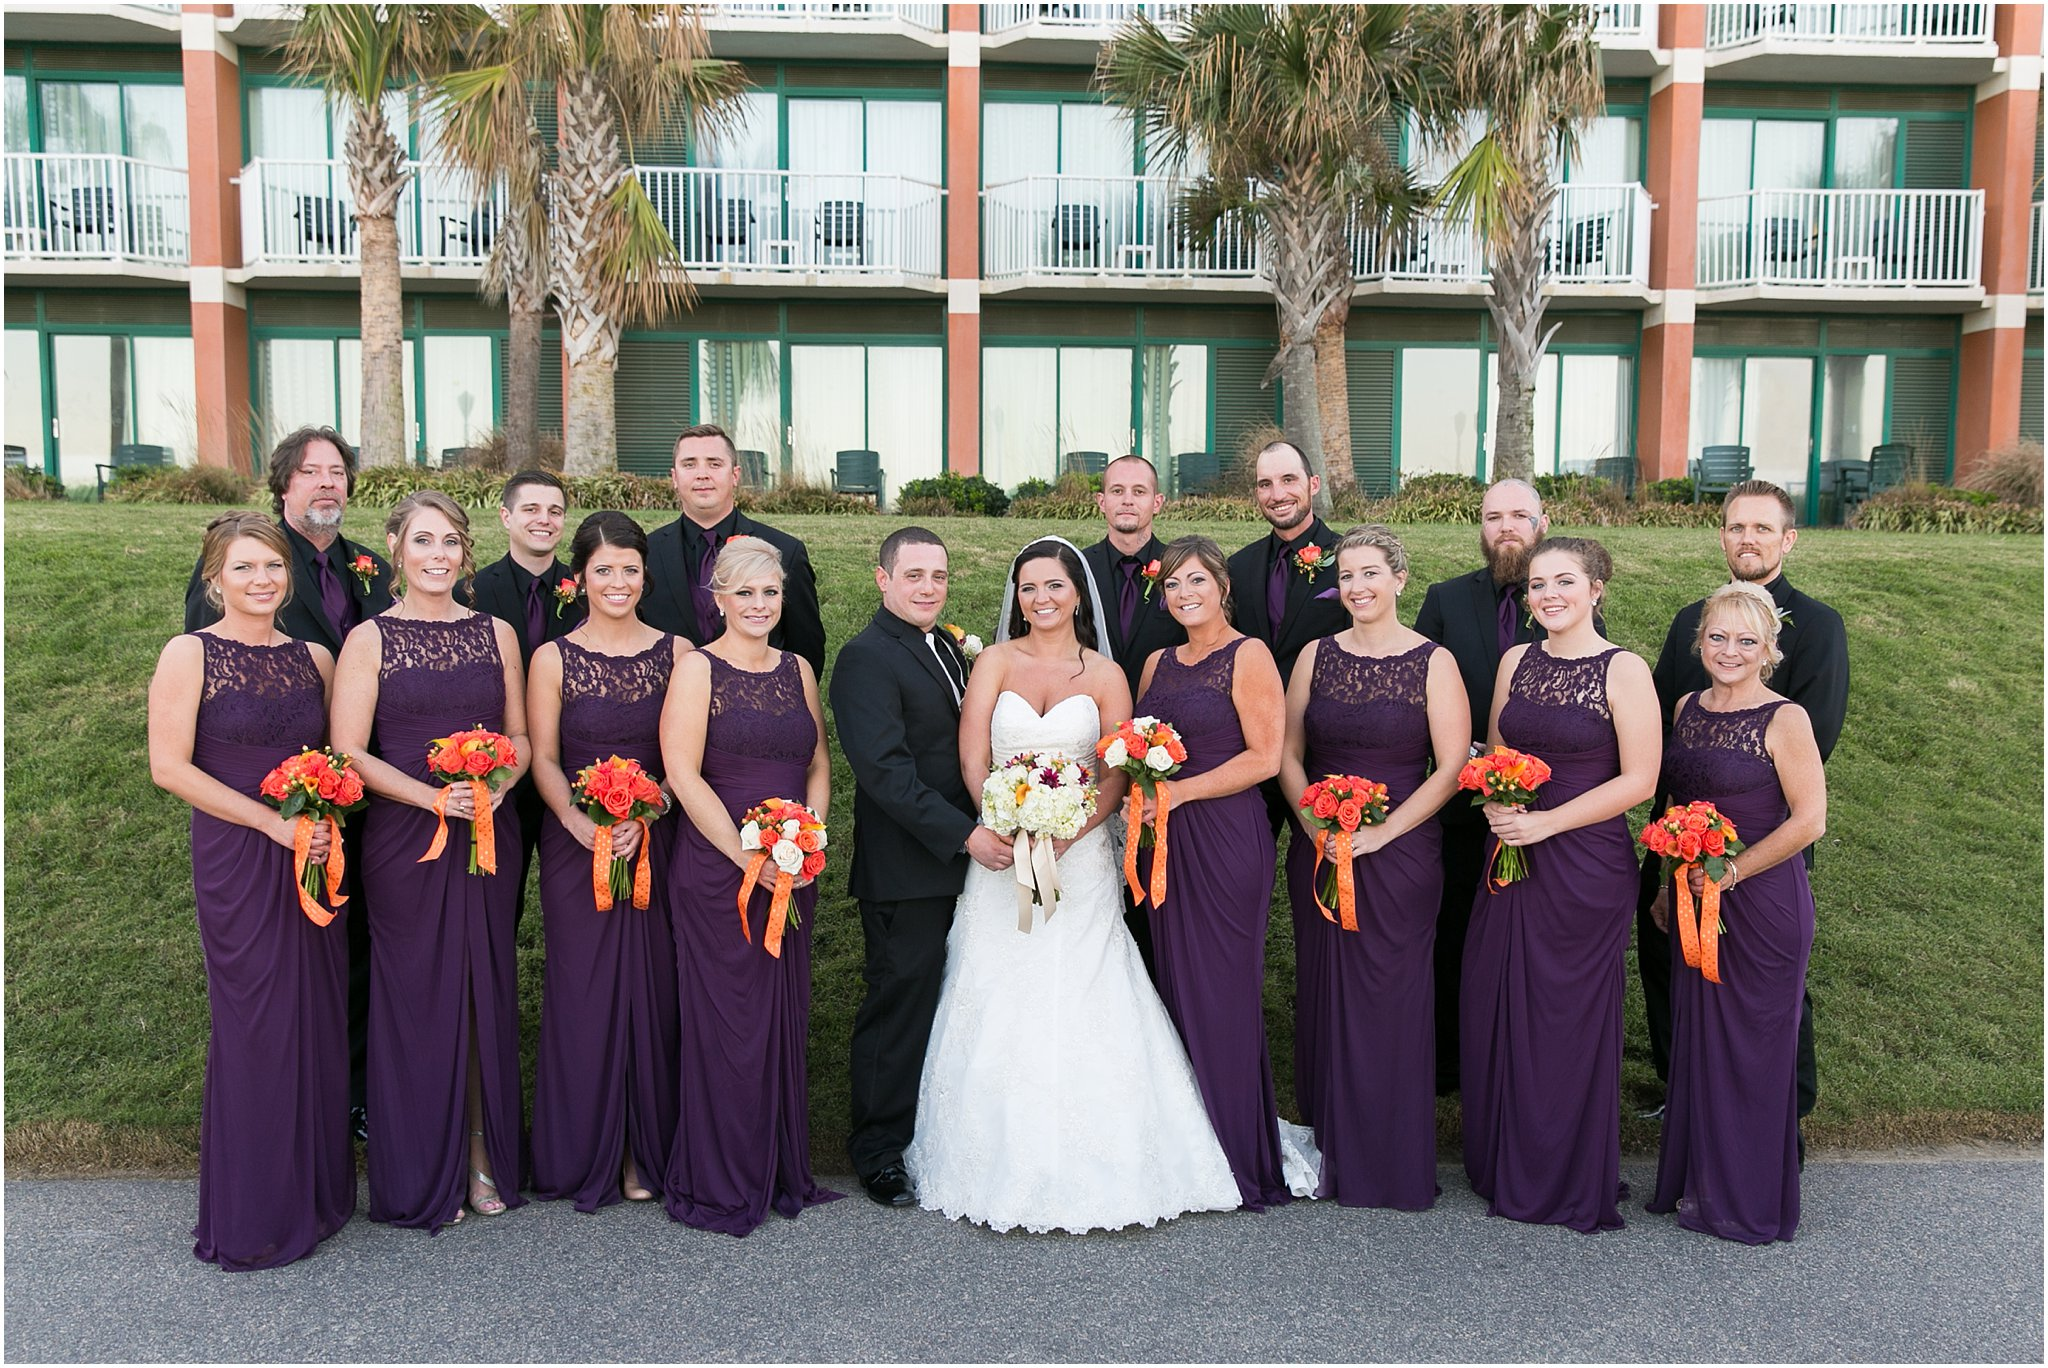 jessica_ryan_photography_wedding_virginia_beach_oceanfront_holiday_inn_north_suites_hotel_wedding_0669